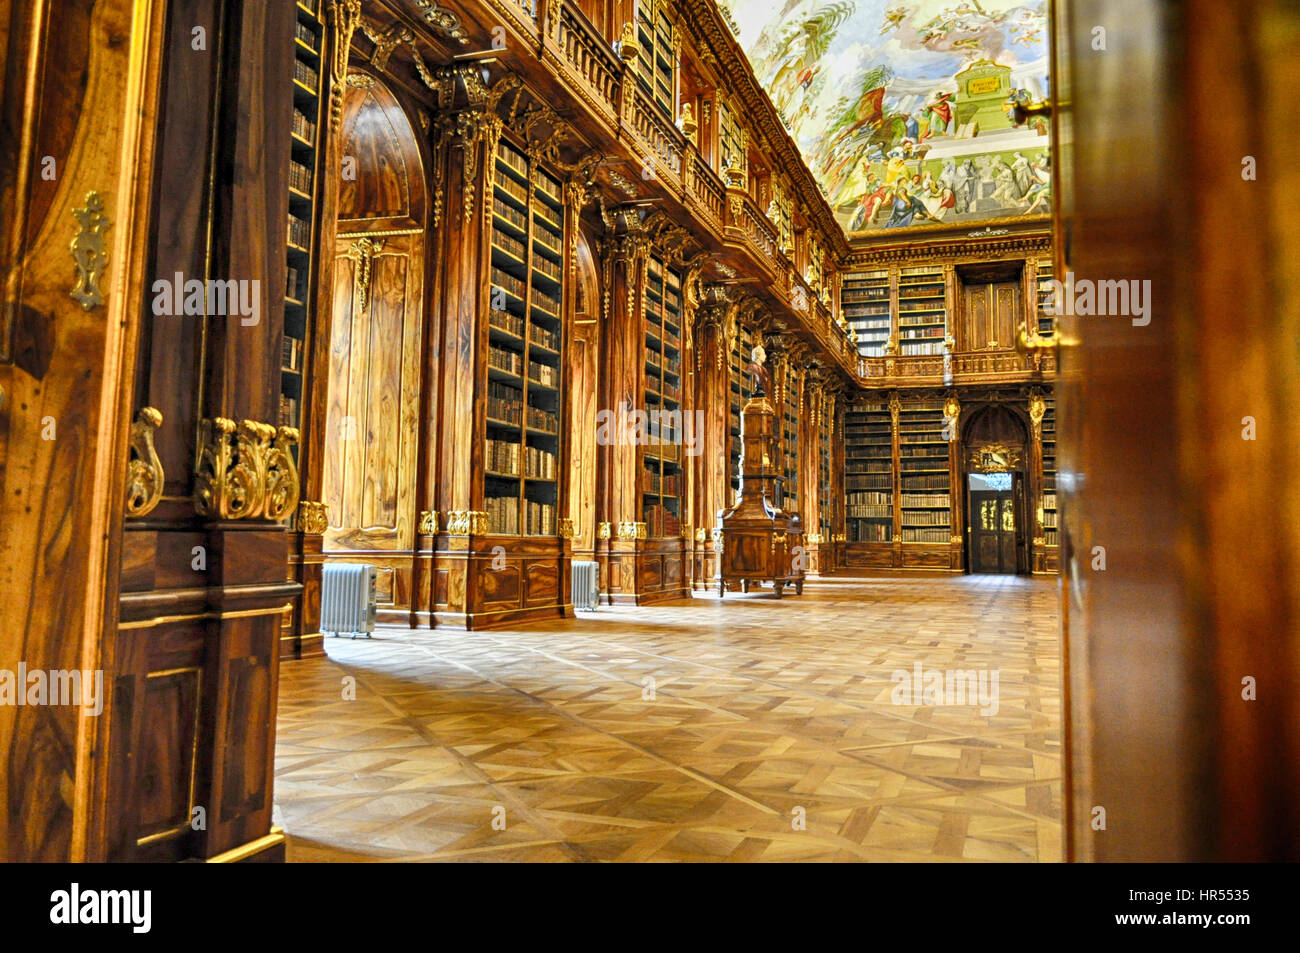 Philosophical Hall. Historical library of Strahov Monastery in Prague - Stock Image